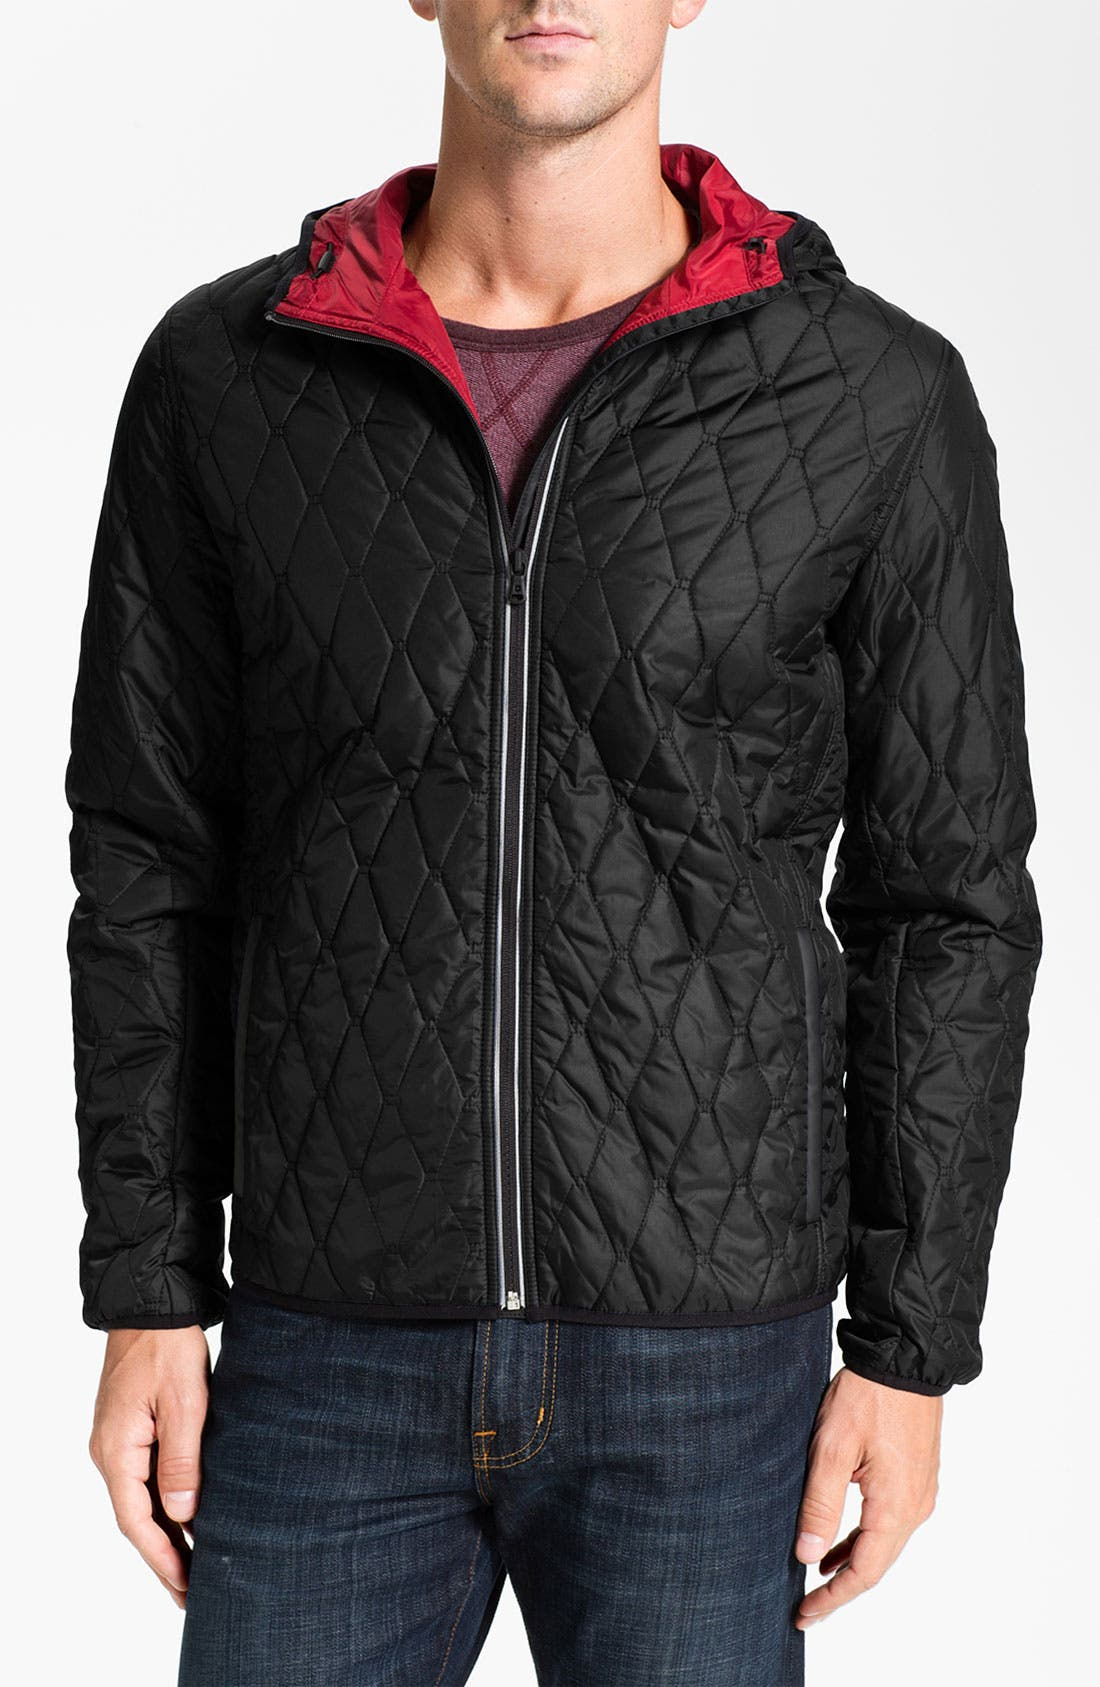 Alternate Image 1 Selected - Victorinox Swiss Army® 'Davos' Quilted Jacket (Online Exclusive)